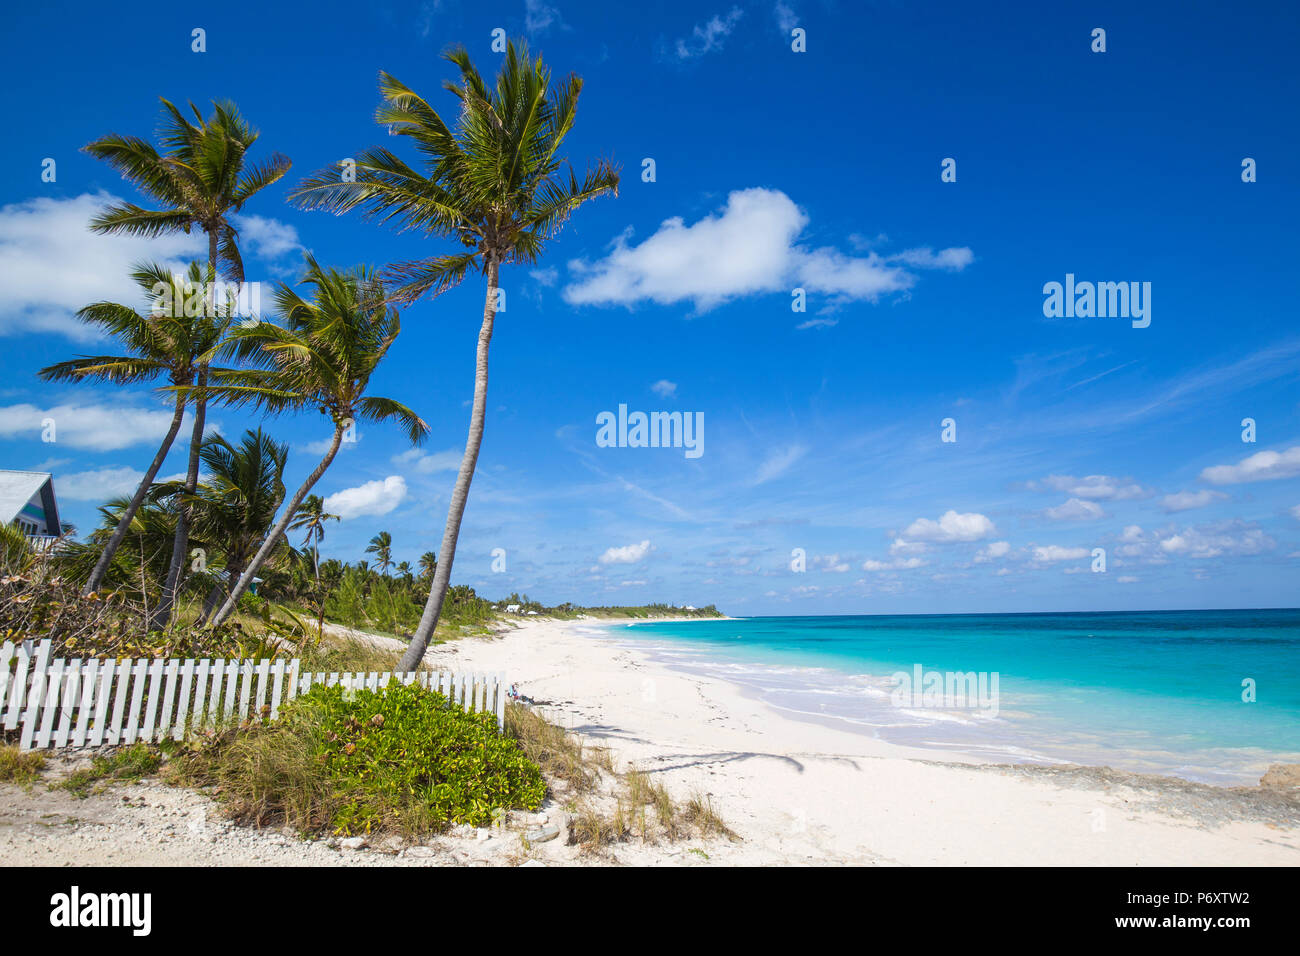 Bahamas, Abaco Islands, Elbow Cay, Hope Town, Hope Town beach - Stock Image